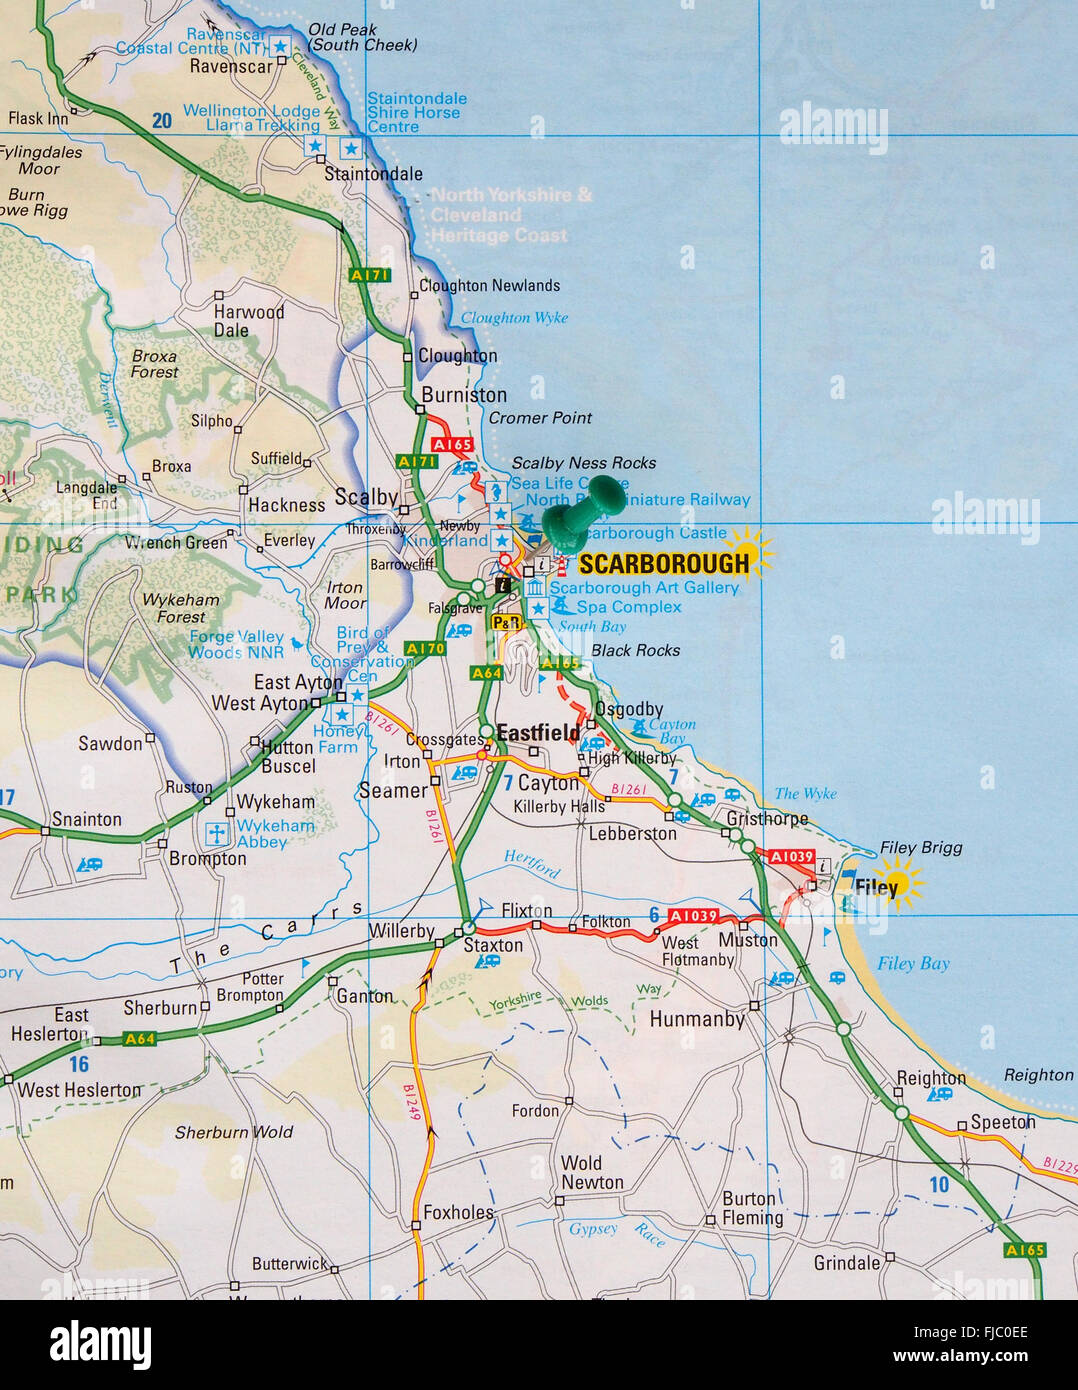 Road map of the east coast of England, showing Filey and with a map ...